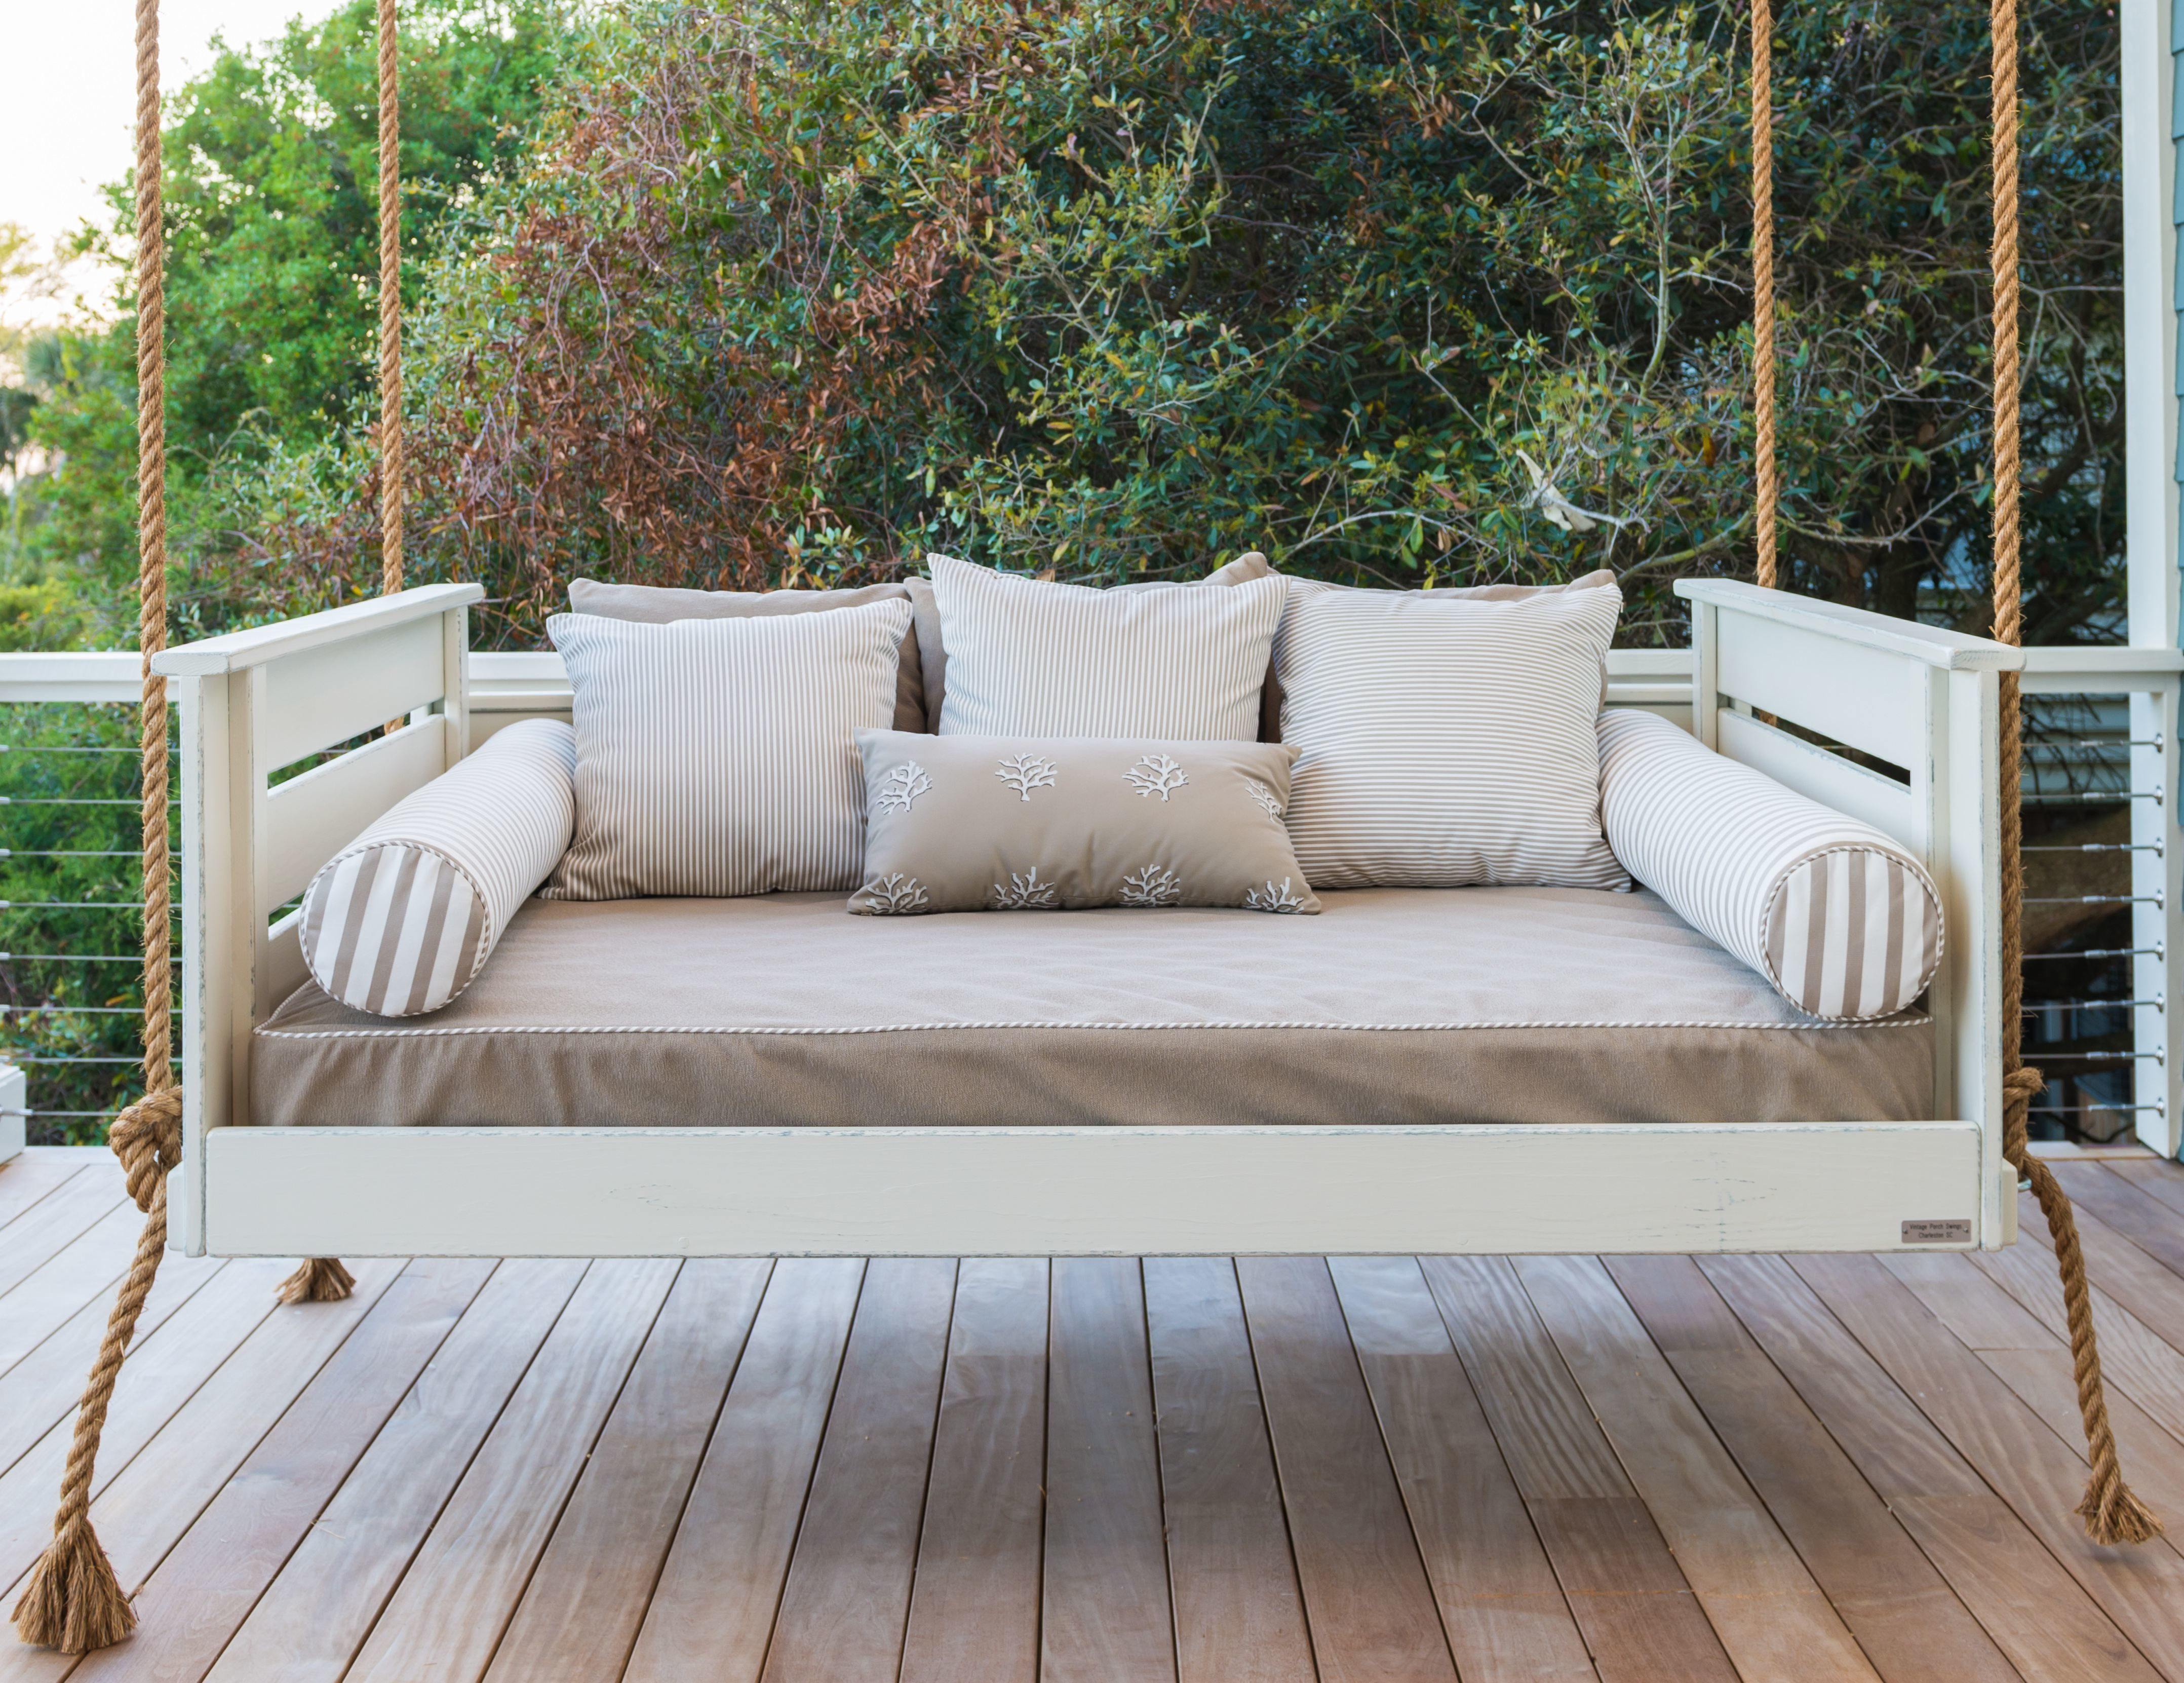 Porch Swing Inspiration For Free Standing Wooden Hanging Outdoor Loveseat